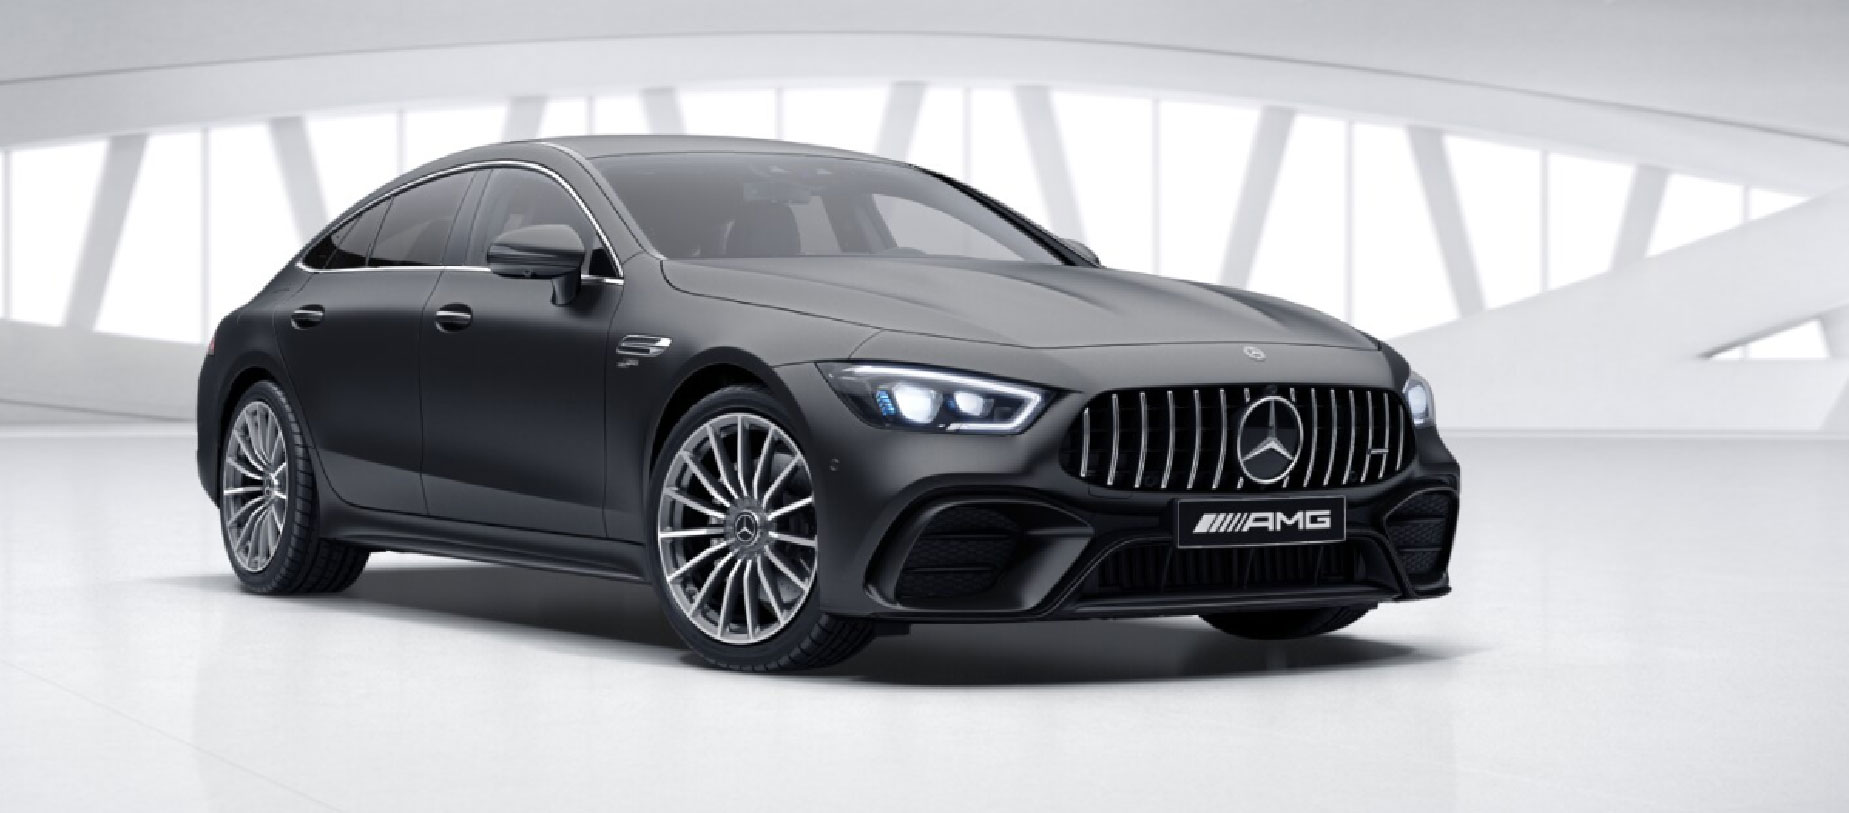 Mercedes-AMG GT 63 S 4MATIC вид спереди